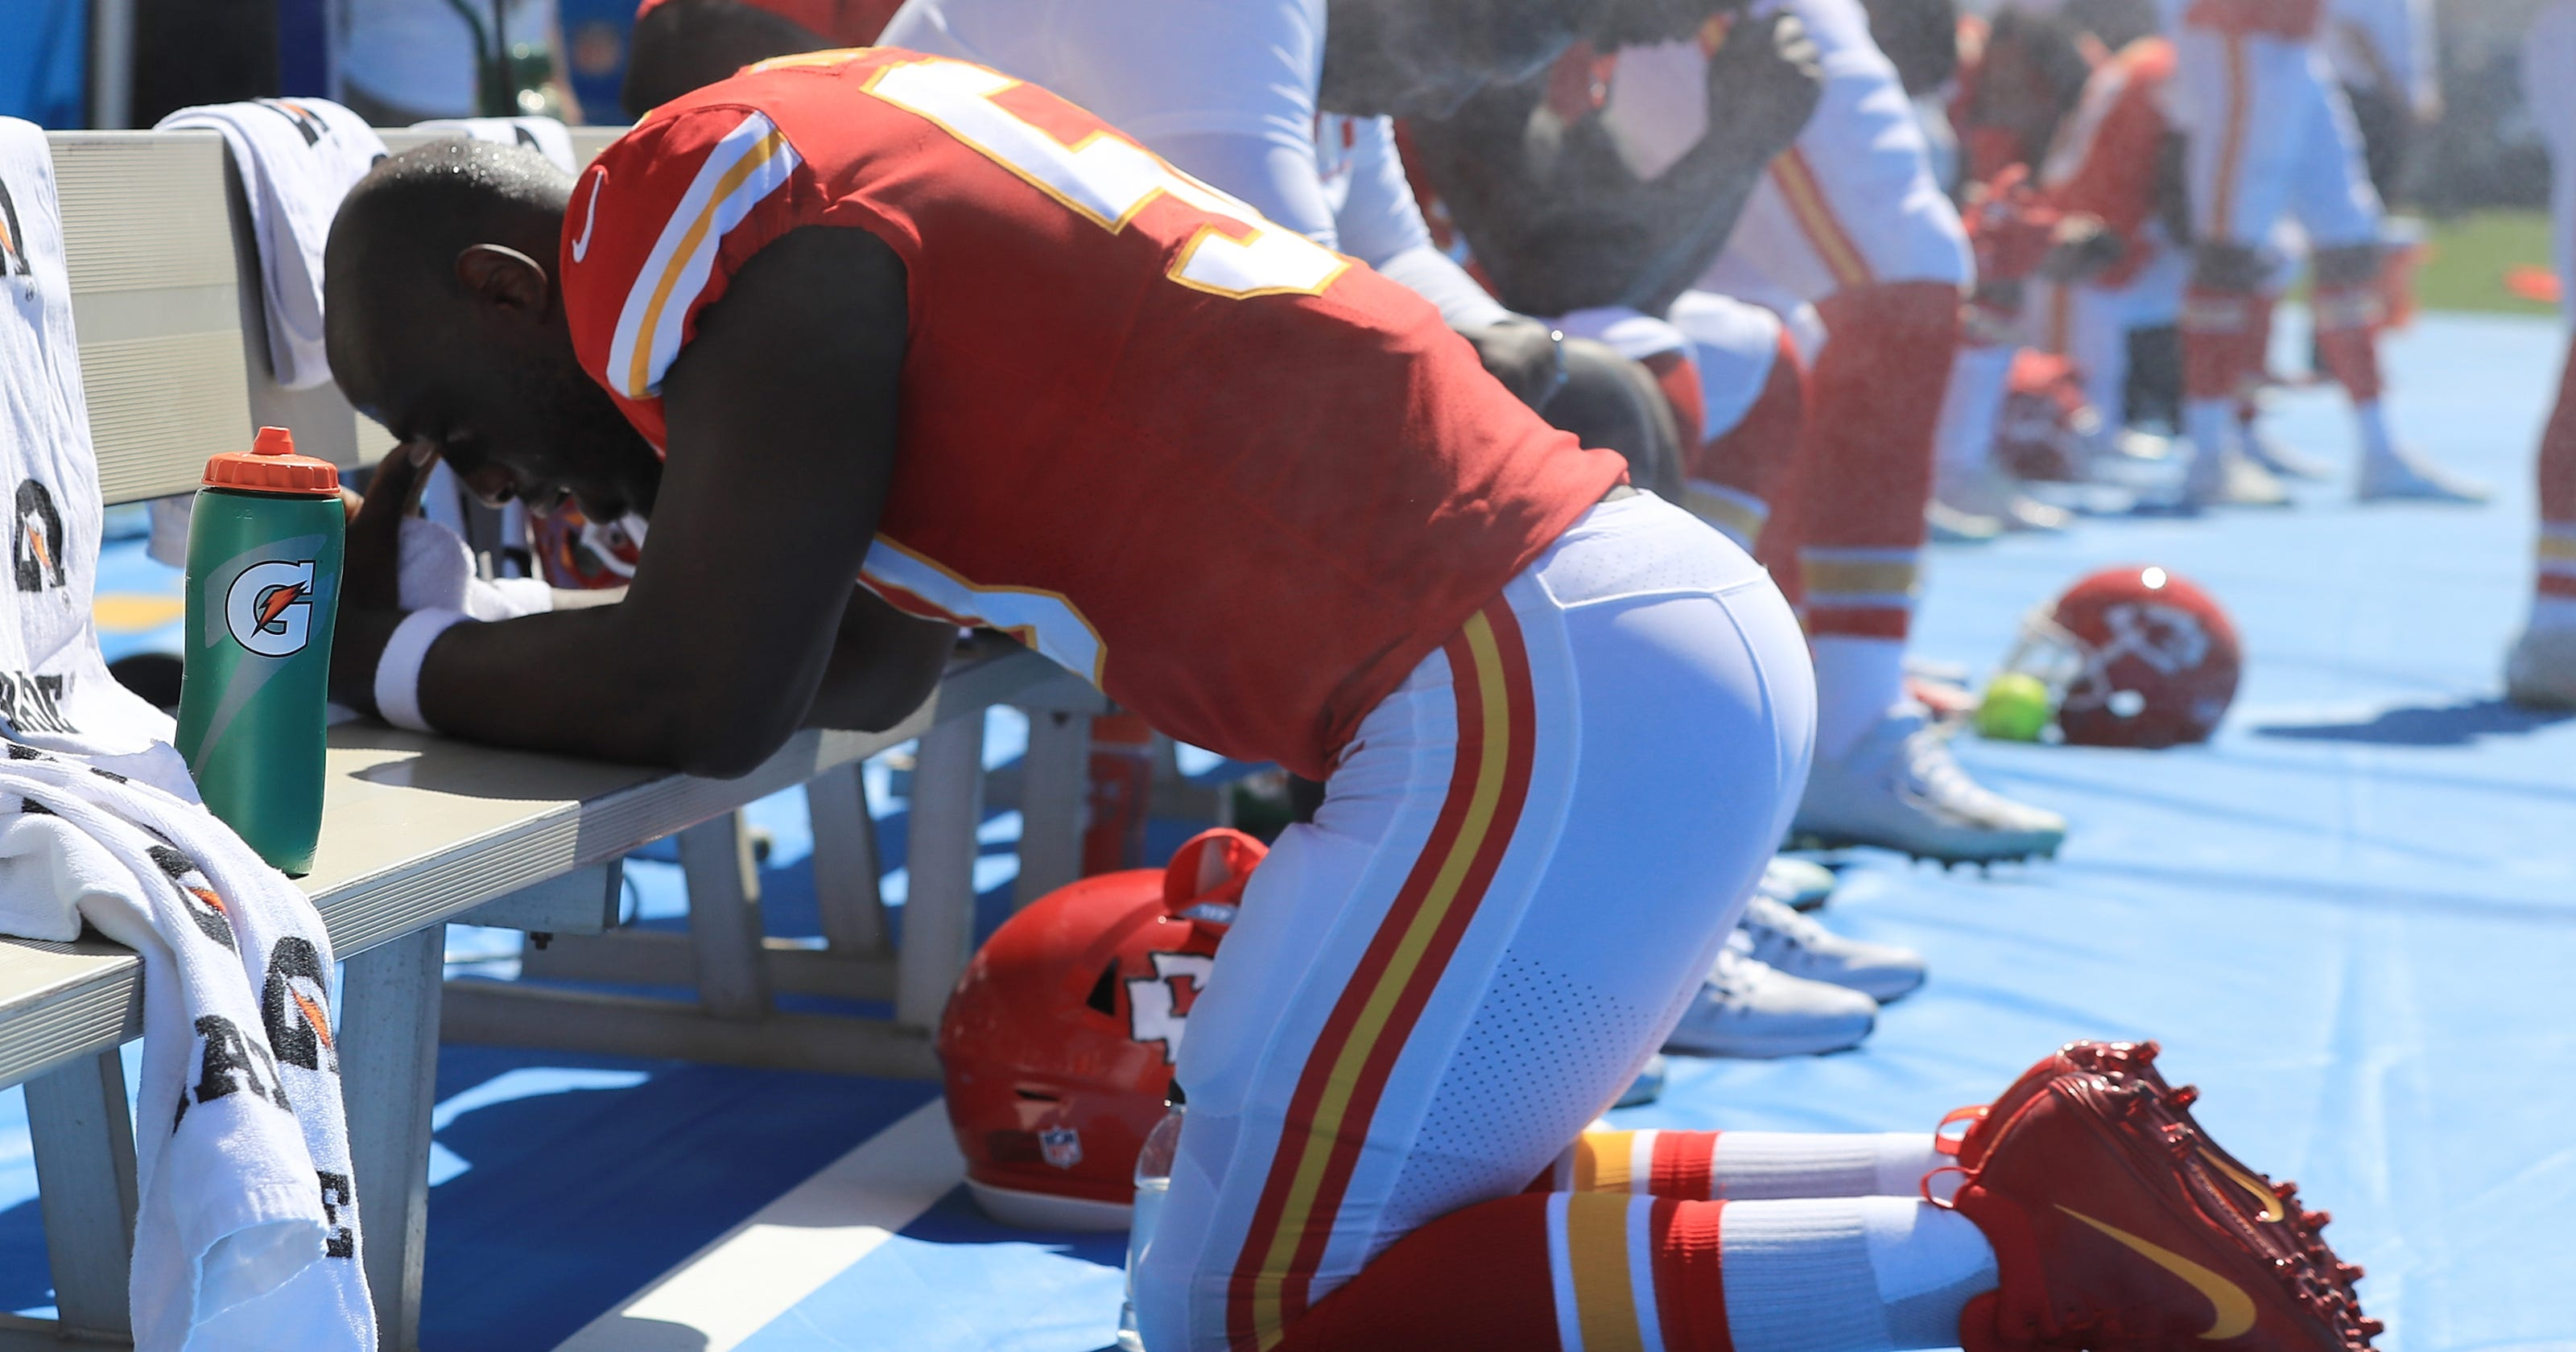 275a163cc27 Anthem kneeling isn't aimed at veterans, and other NFL protest  misconceptions